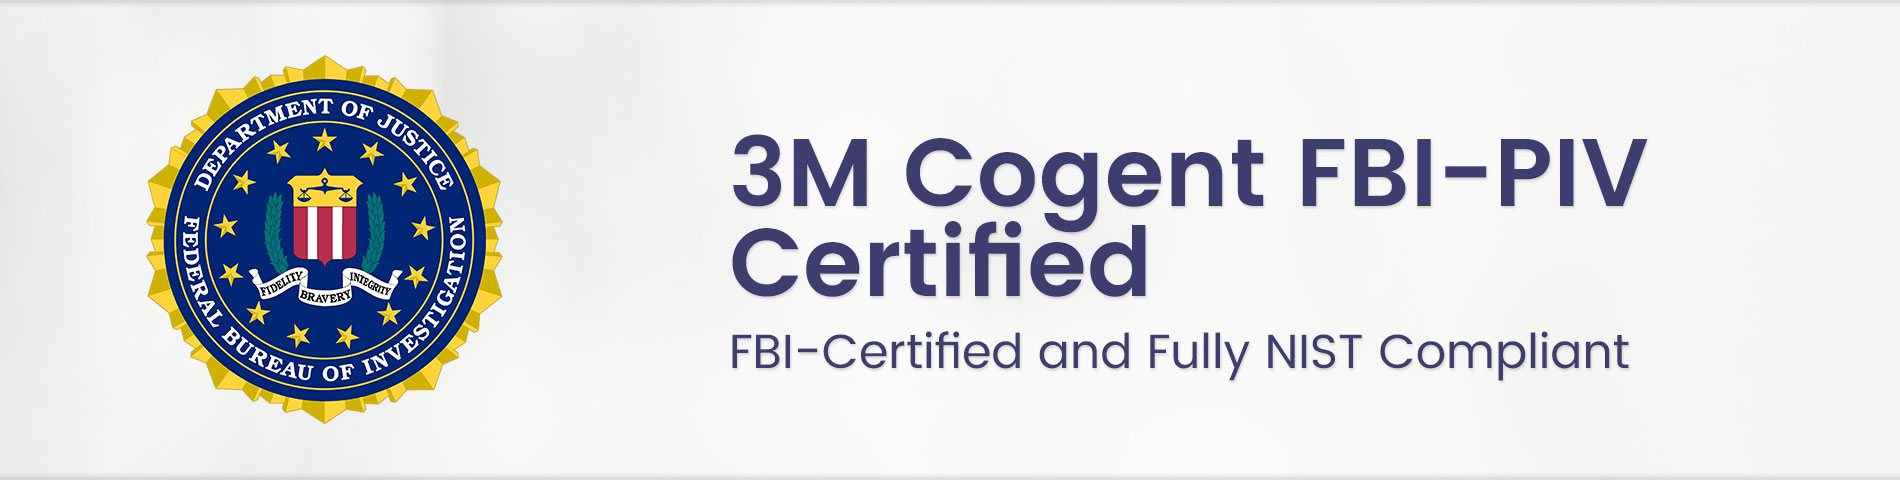 FBI Certification